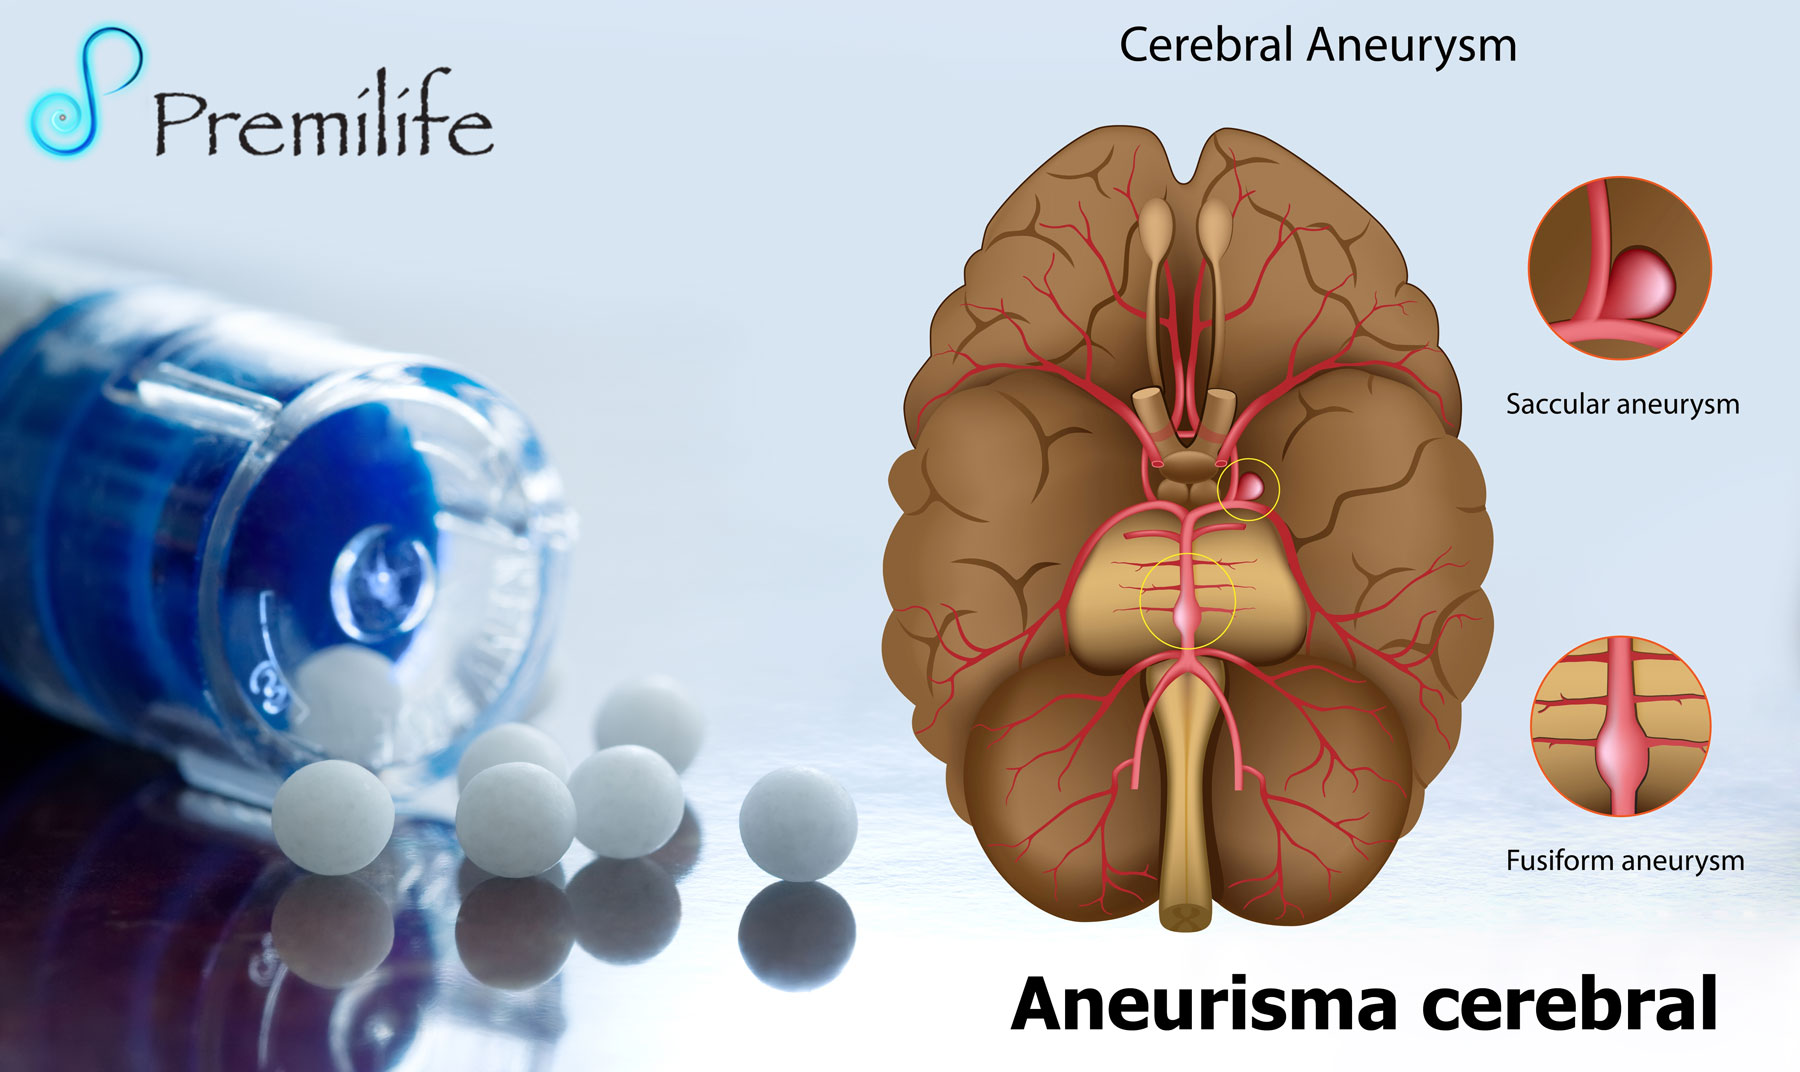 causes and symptoms of brain aneurysm Intracranial aneurysm, also known as brain aneurysm, is a cerebrovascular disorder in which weakness in the wall of a cerebral artery or vein causes a localized.